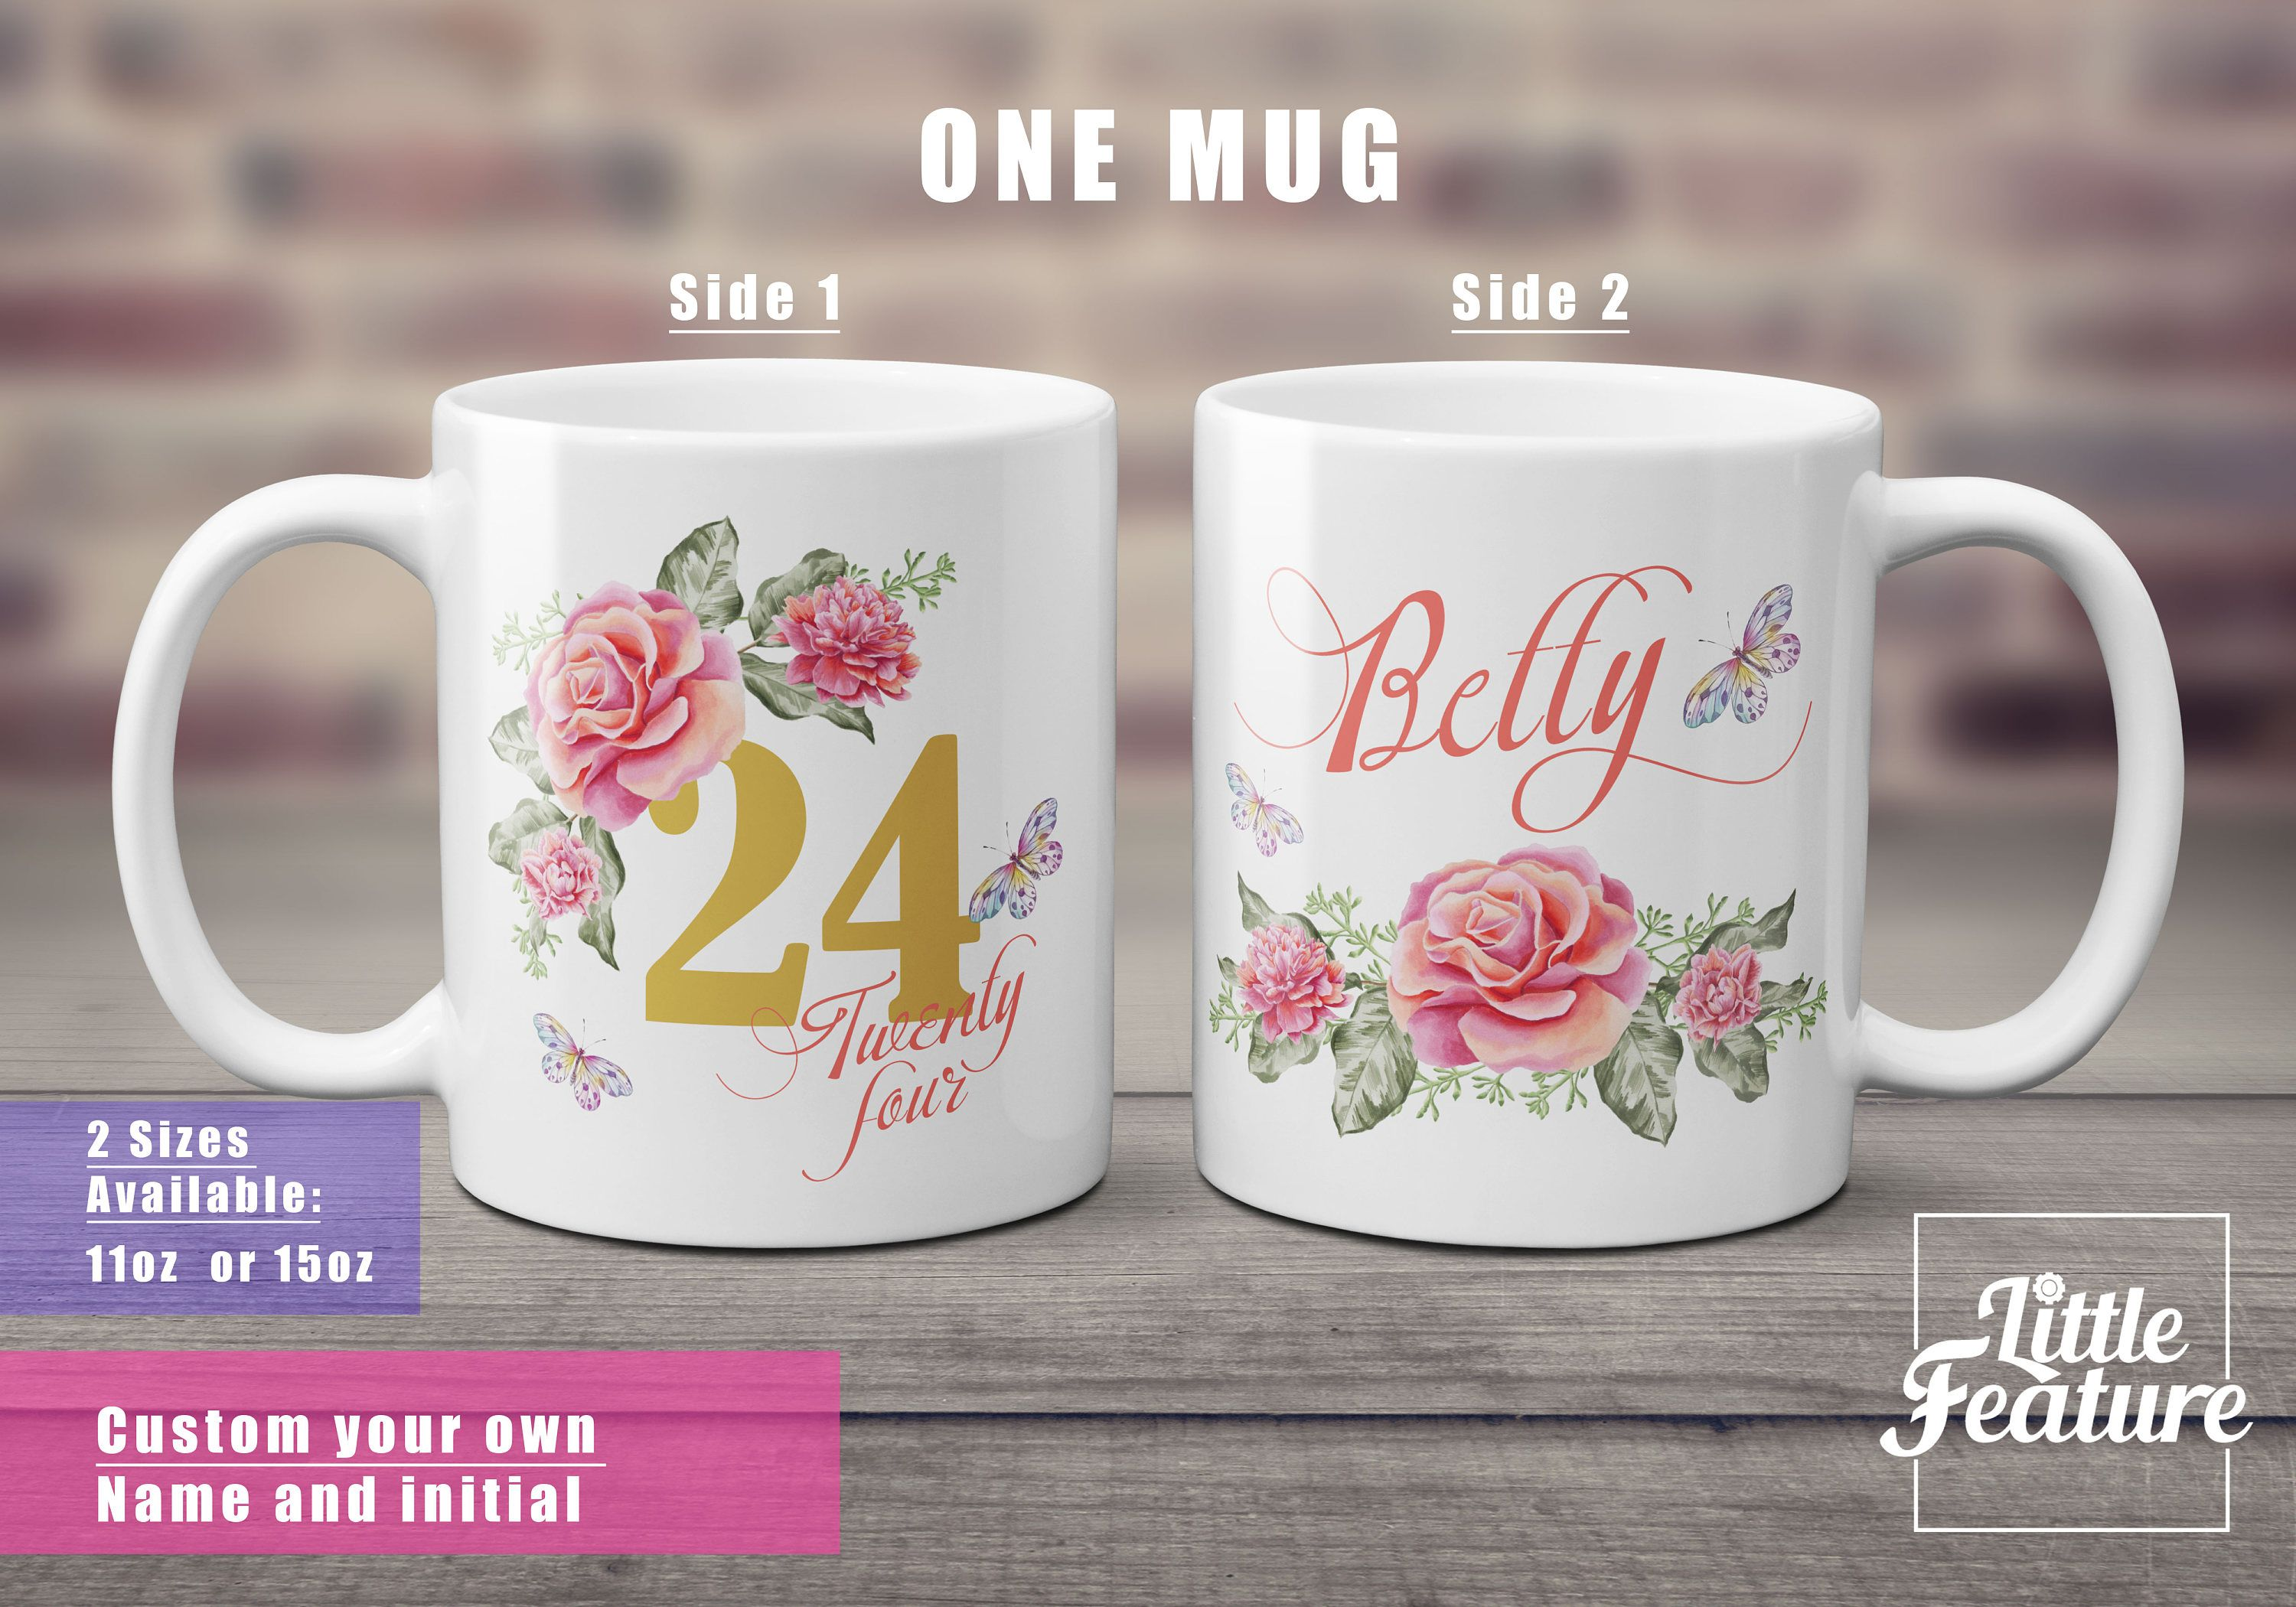 Personalised Mug For Sister 24 Birthday Gift Aunt 24th Idea Her Custom Name Coffee Girlfriend By LittleFeature